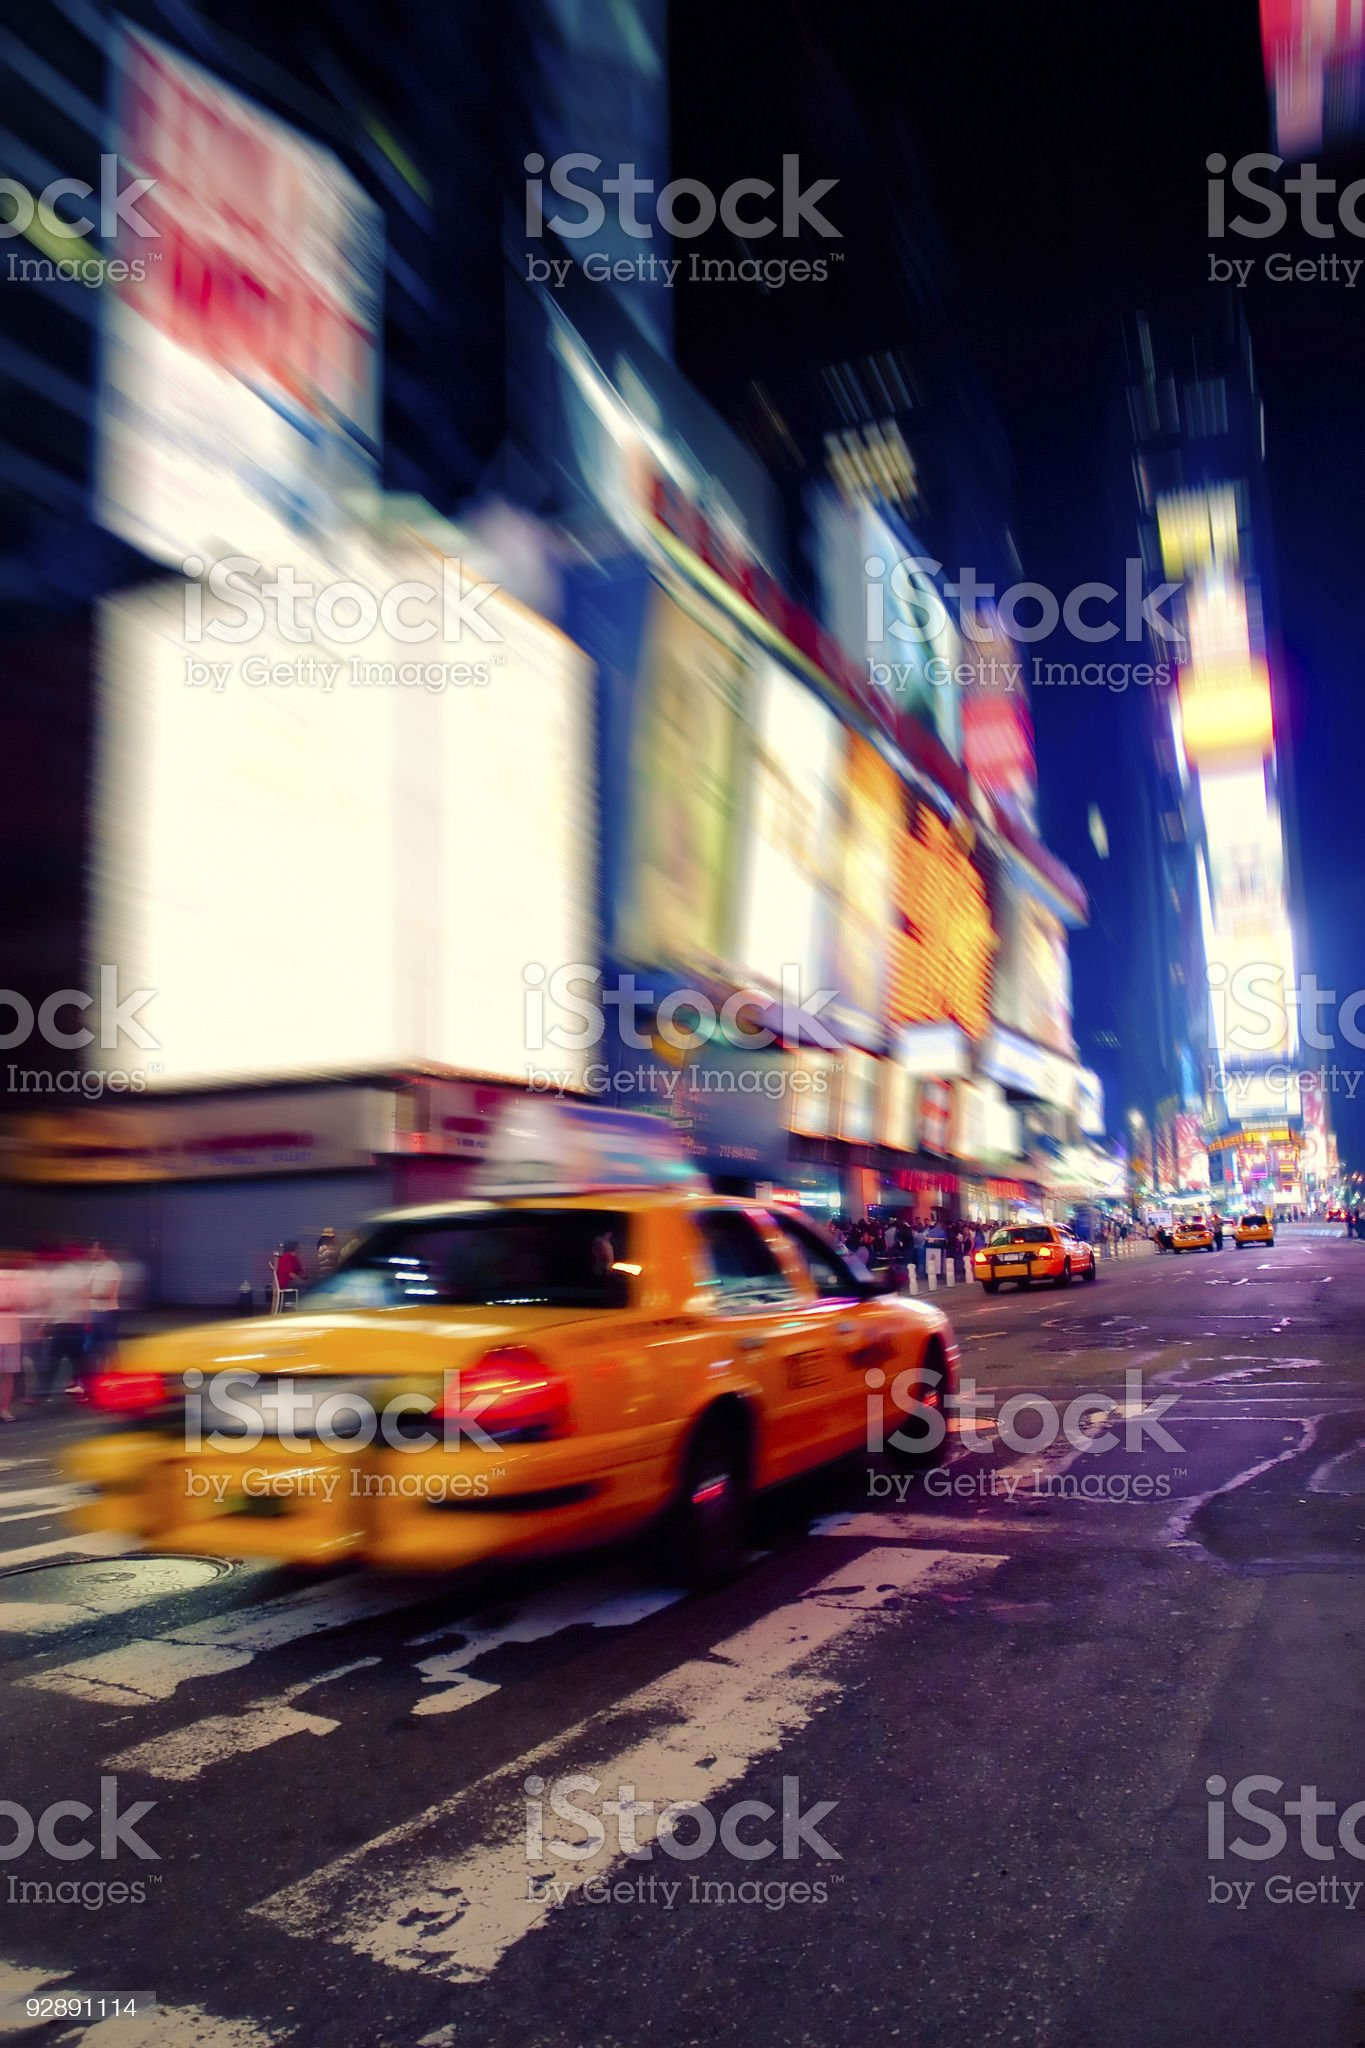 Taxi in Times Square royalty-free stock photo